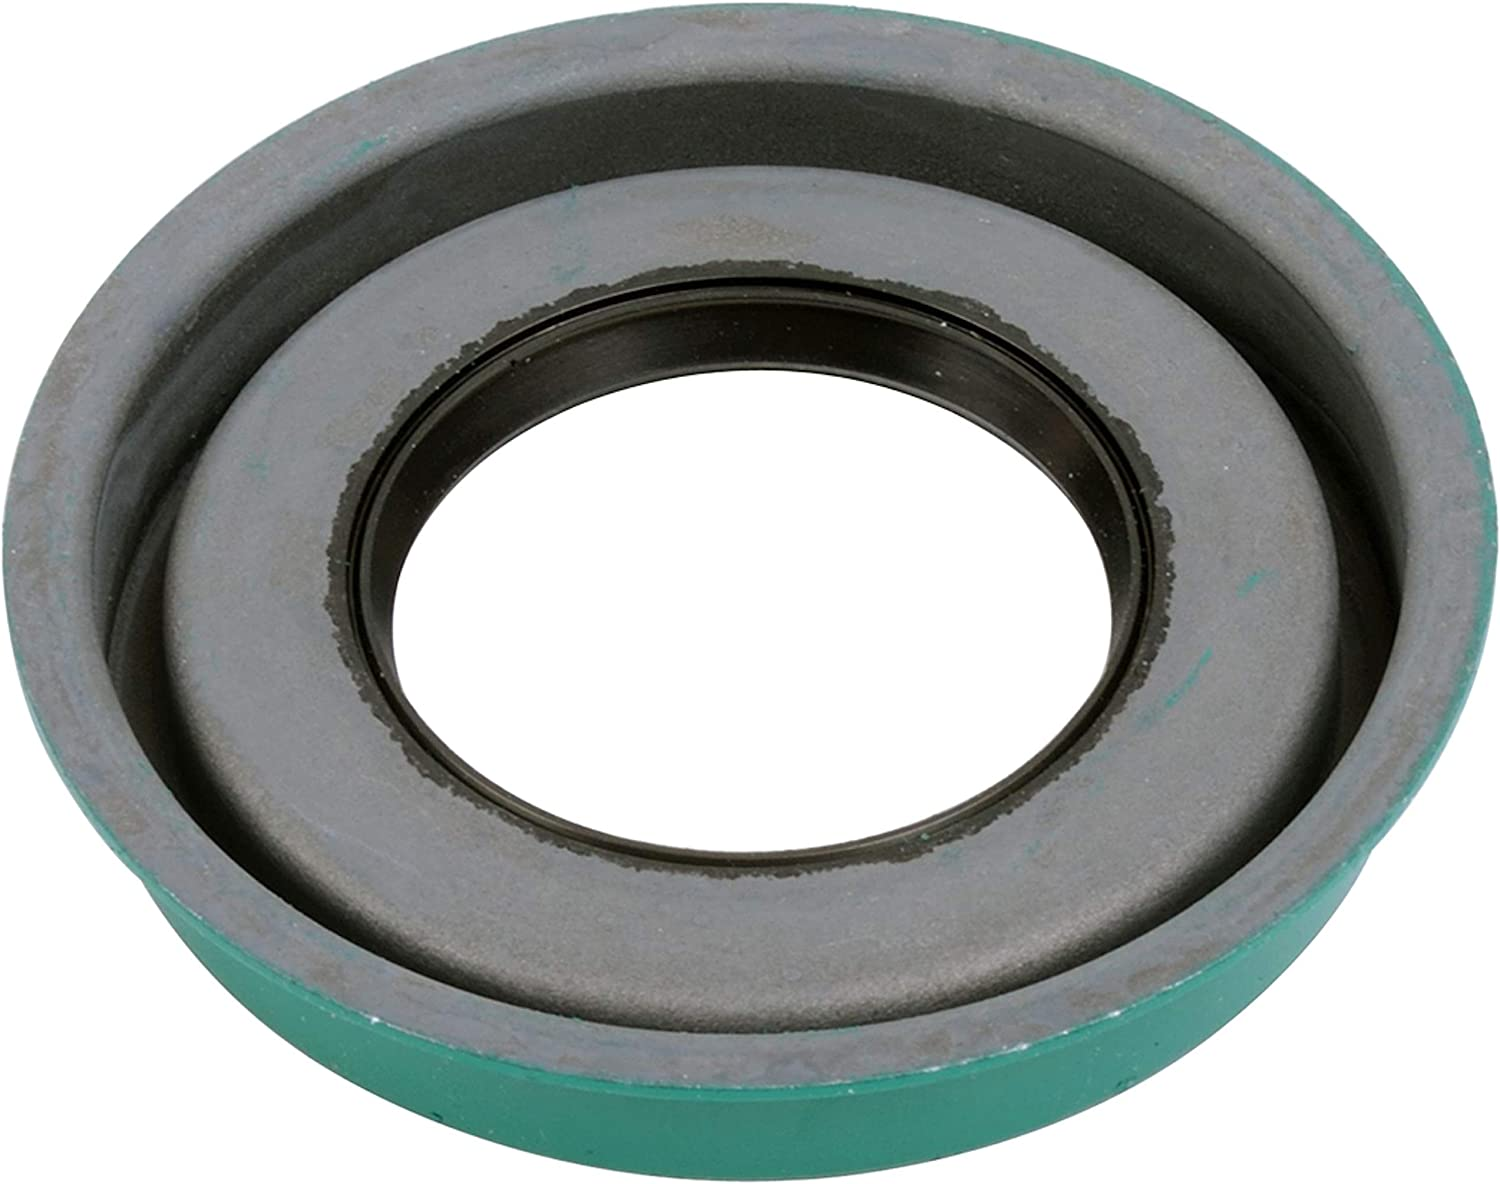 SKF 16146 SEAL limited product Grease Sales for sale Seals